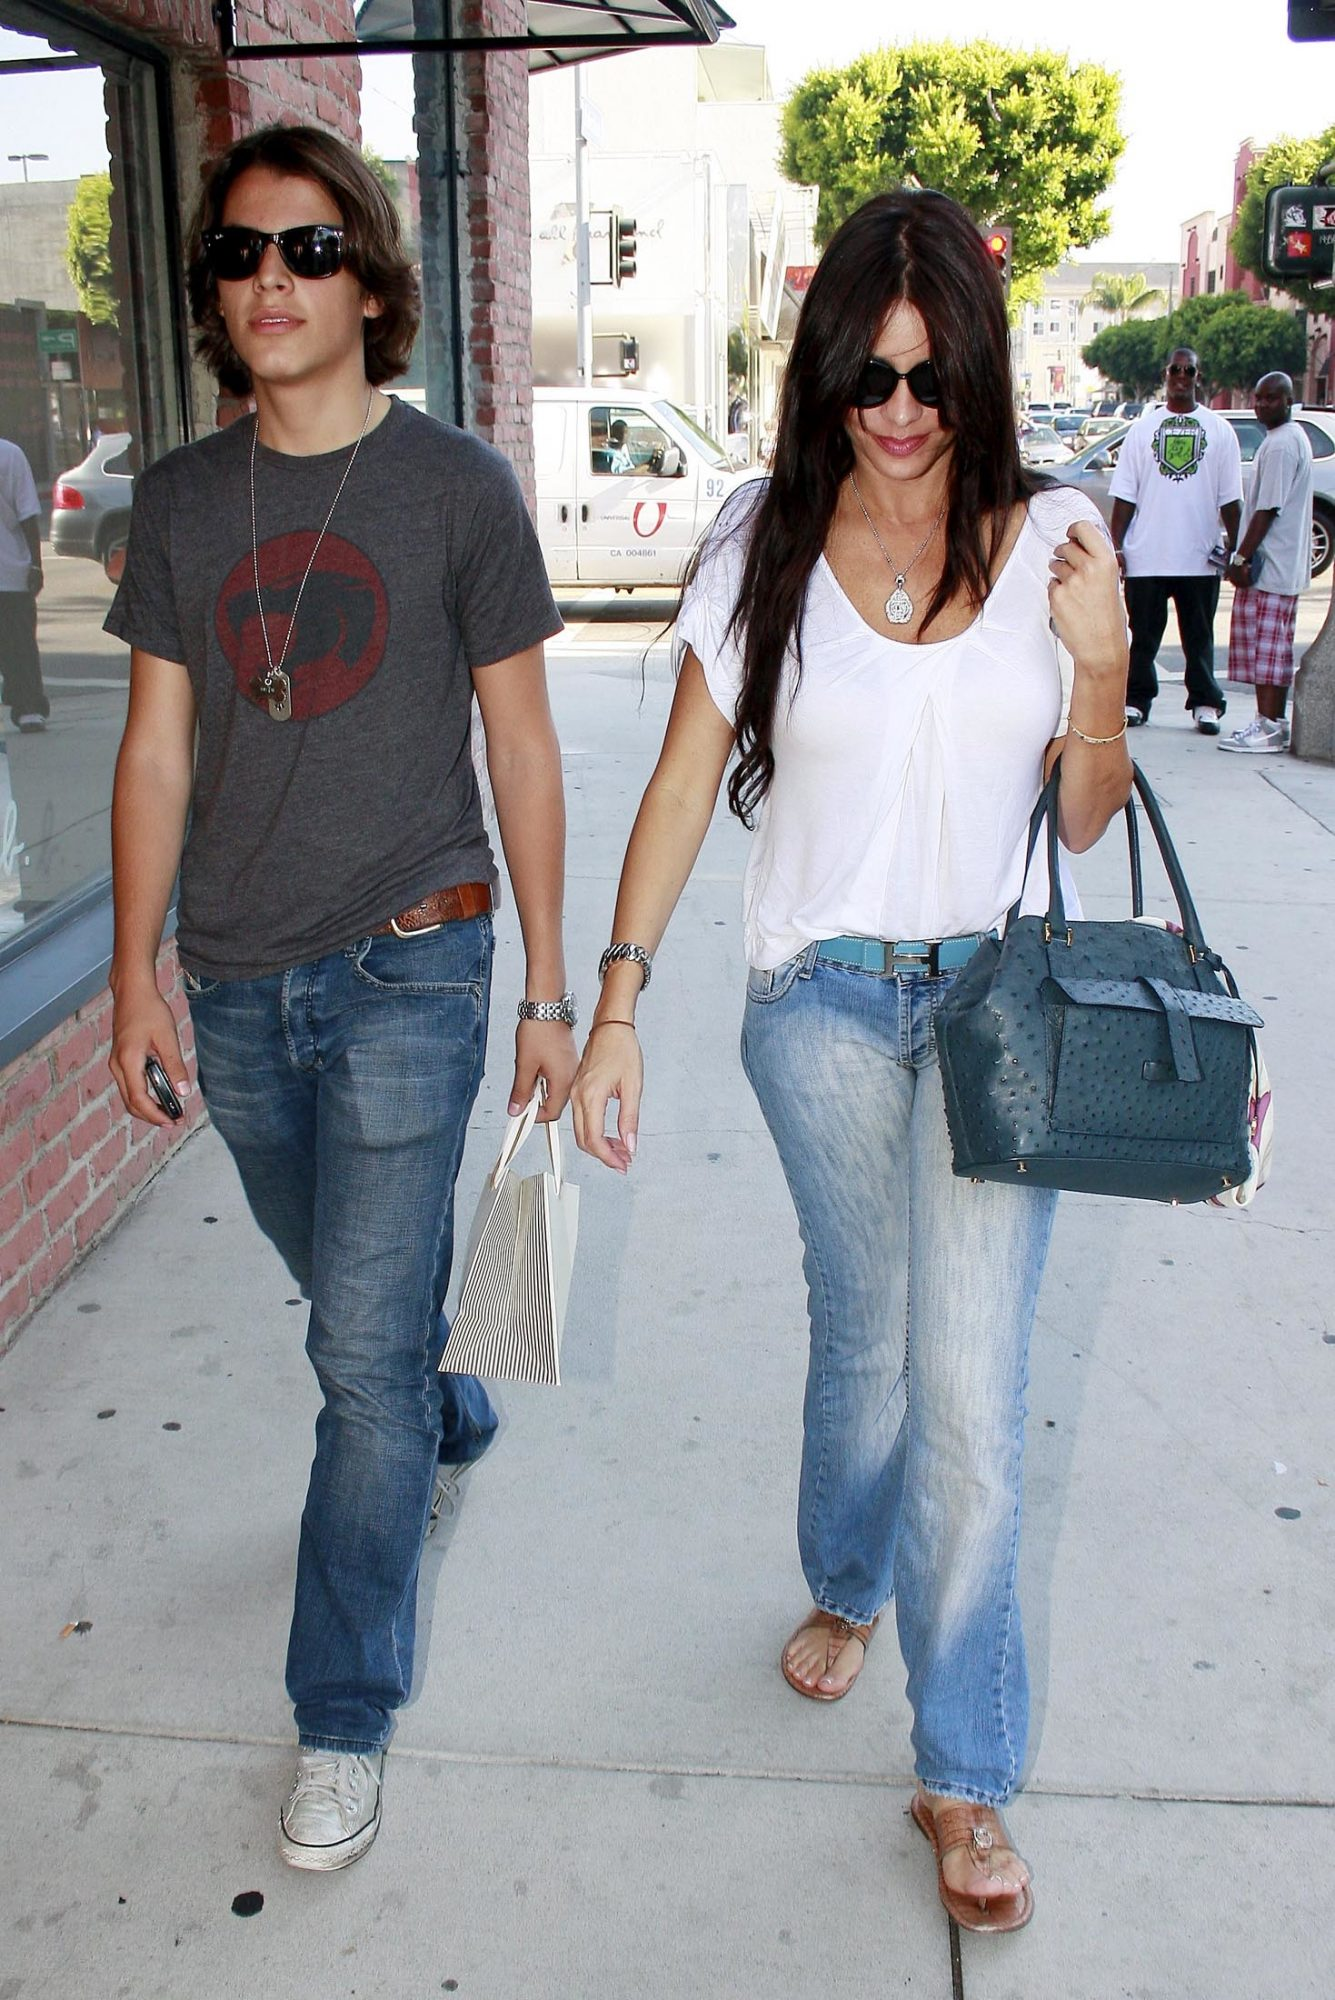 SOFIA VERGARA OUT WITH HER SON